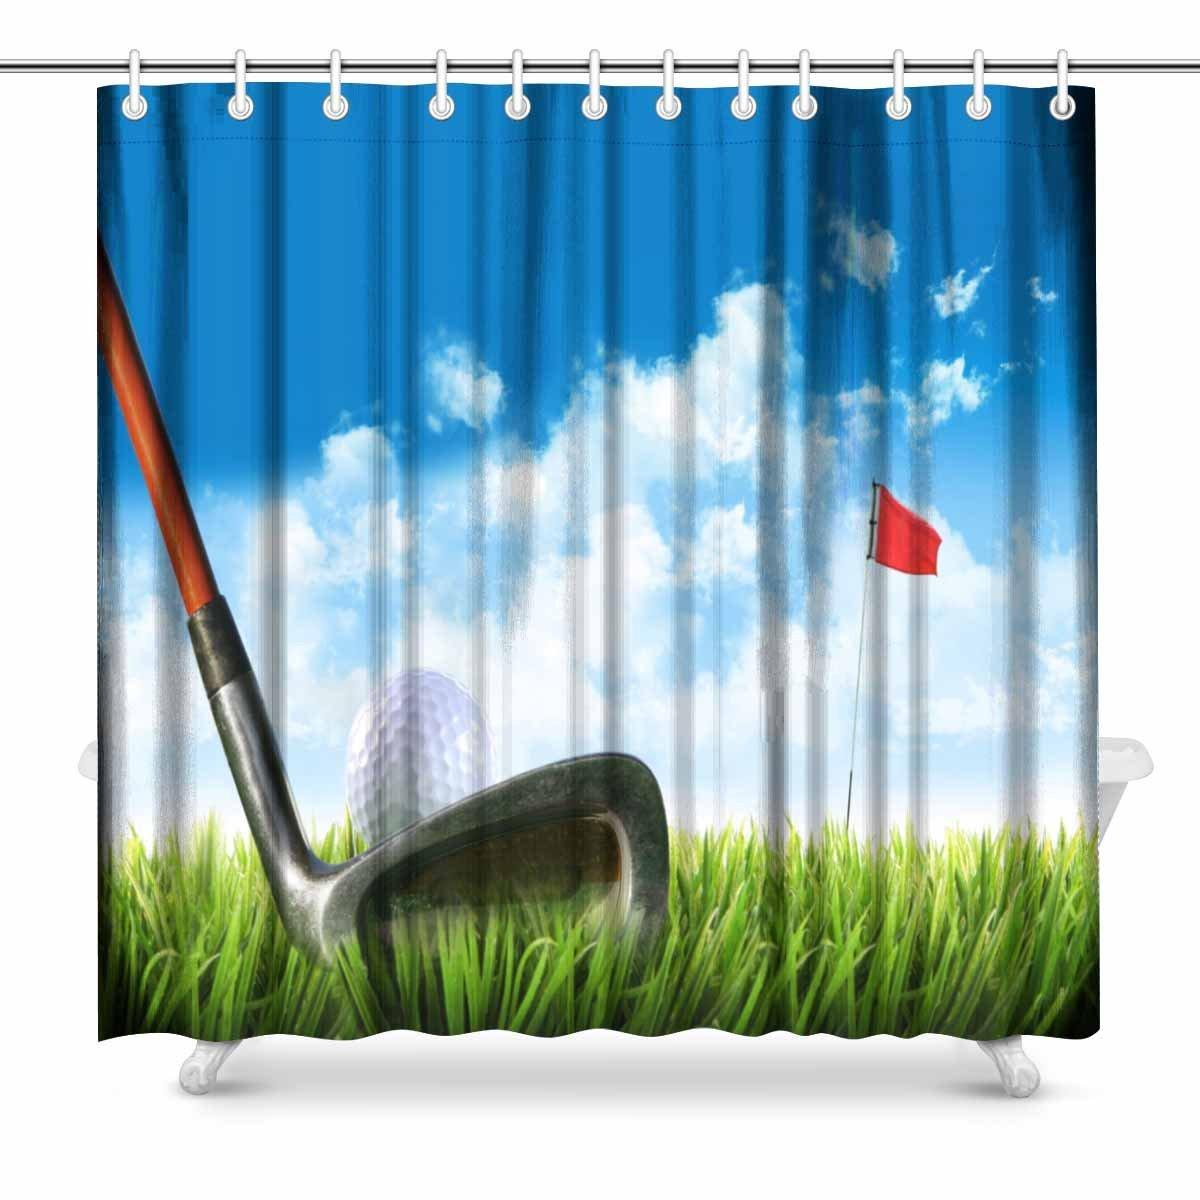 2019 Aplysia Golf Ball With Tee In The Grass Against Blue Sky Bathroom Accessories Shower Curtain Hooks From Icelly 2842